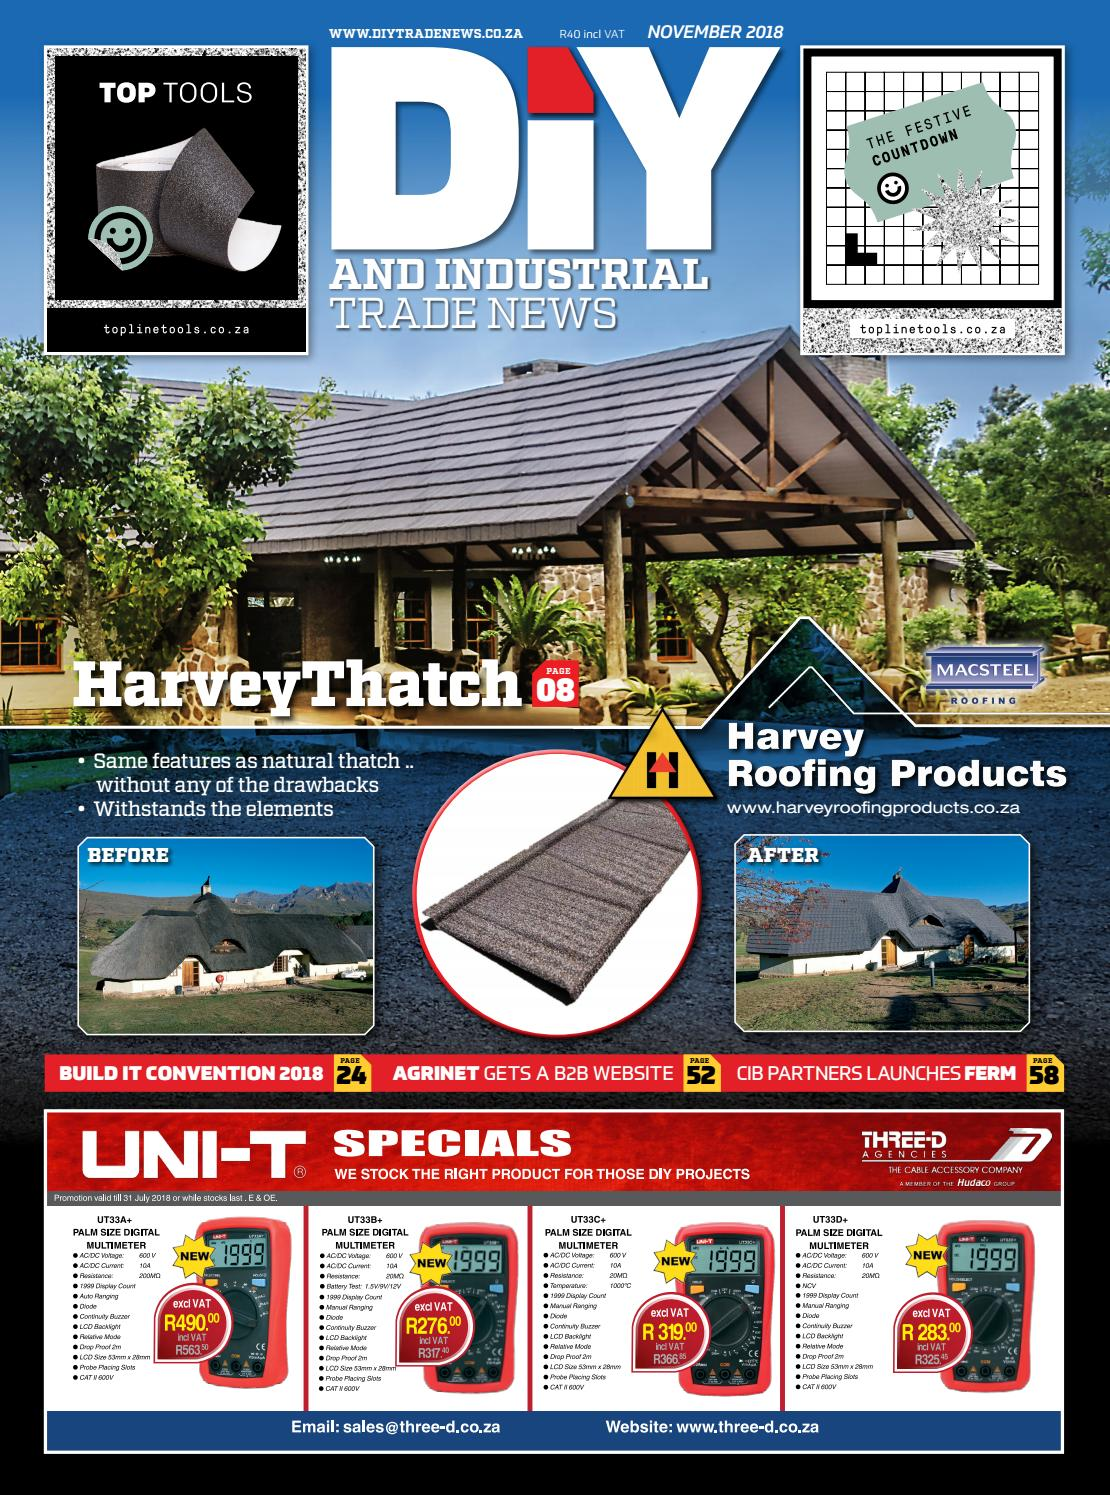 DIY and Industrial Trade News - November 2018 by New Media